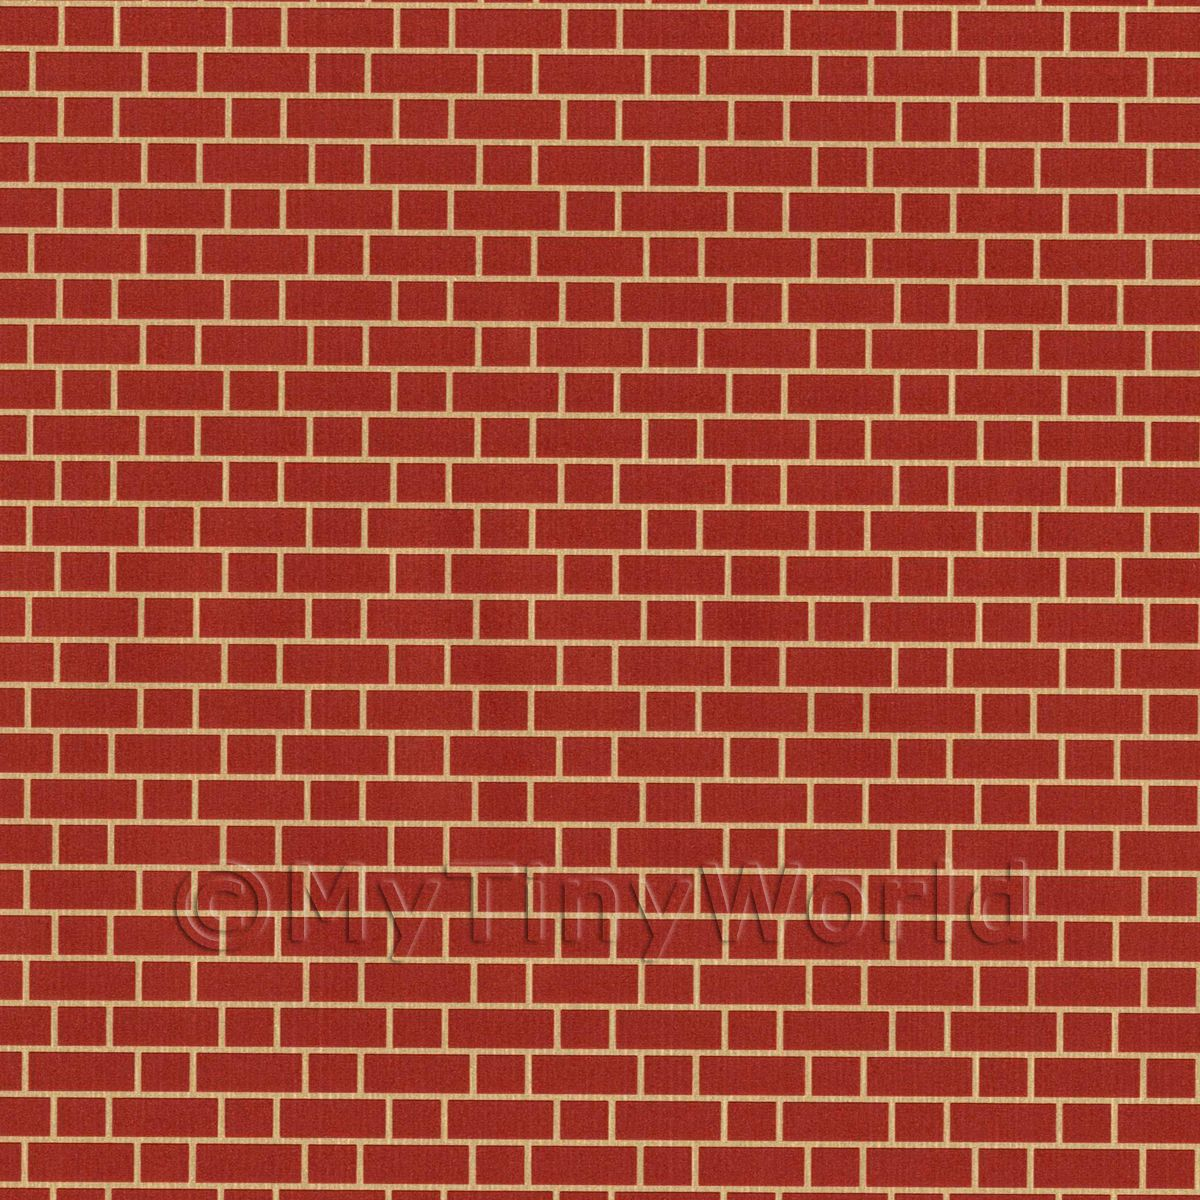 Dolls House Miniature Red Brick Cladding Paper